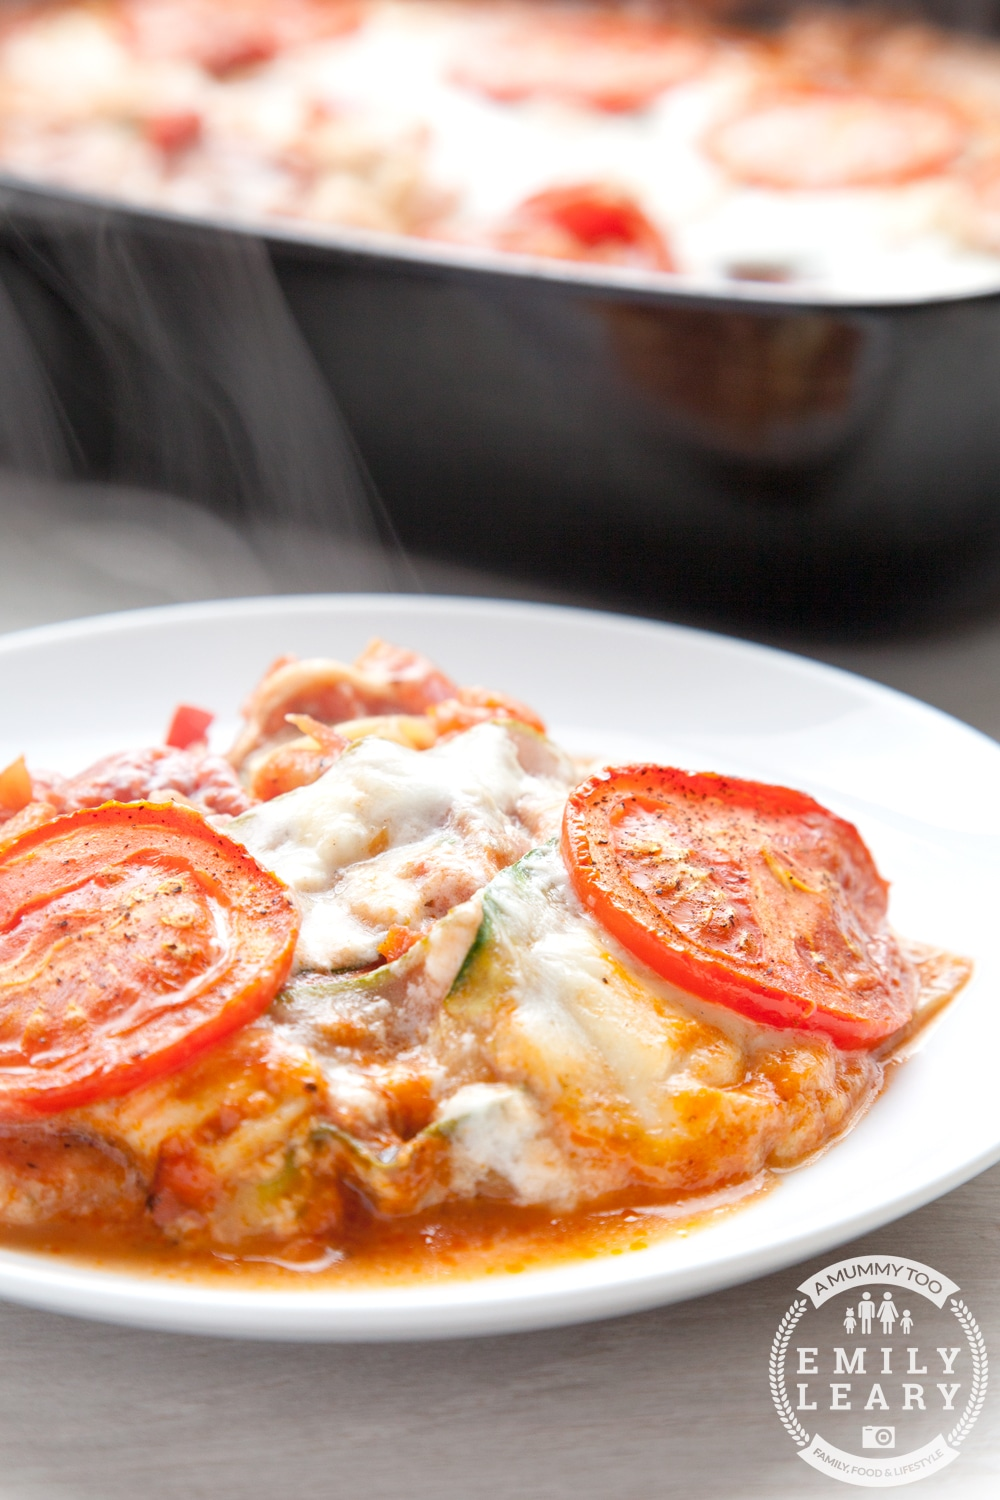 Tomato and courgette mozzarella bake - a low carb, vegetarian take on pasta bake